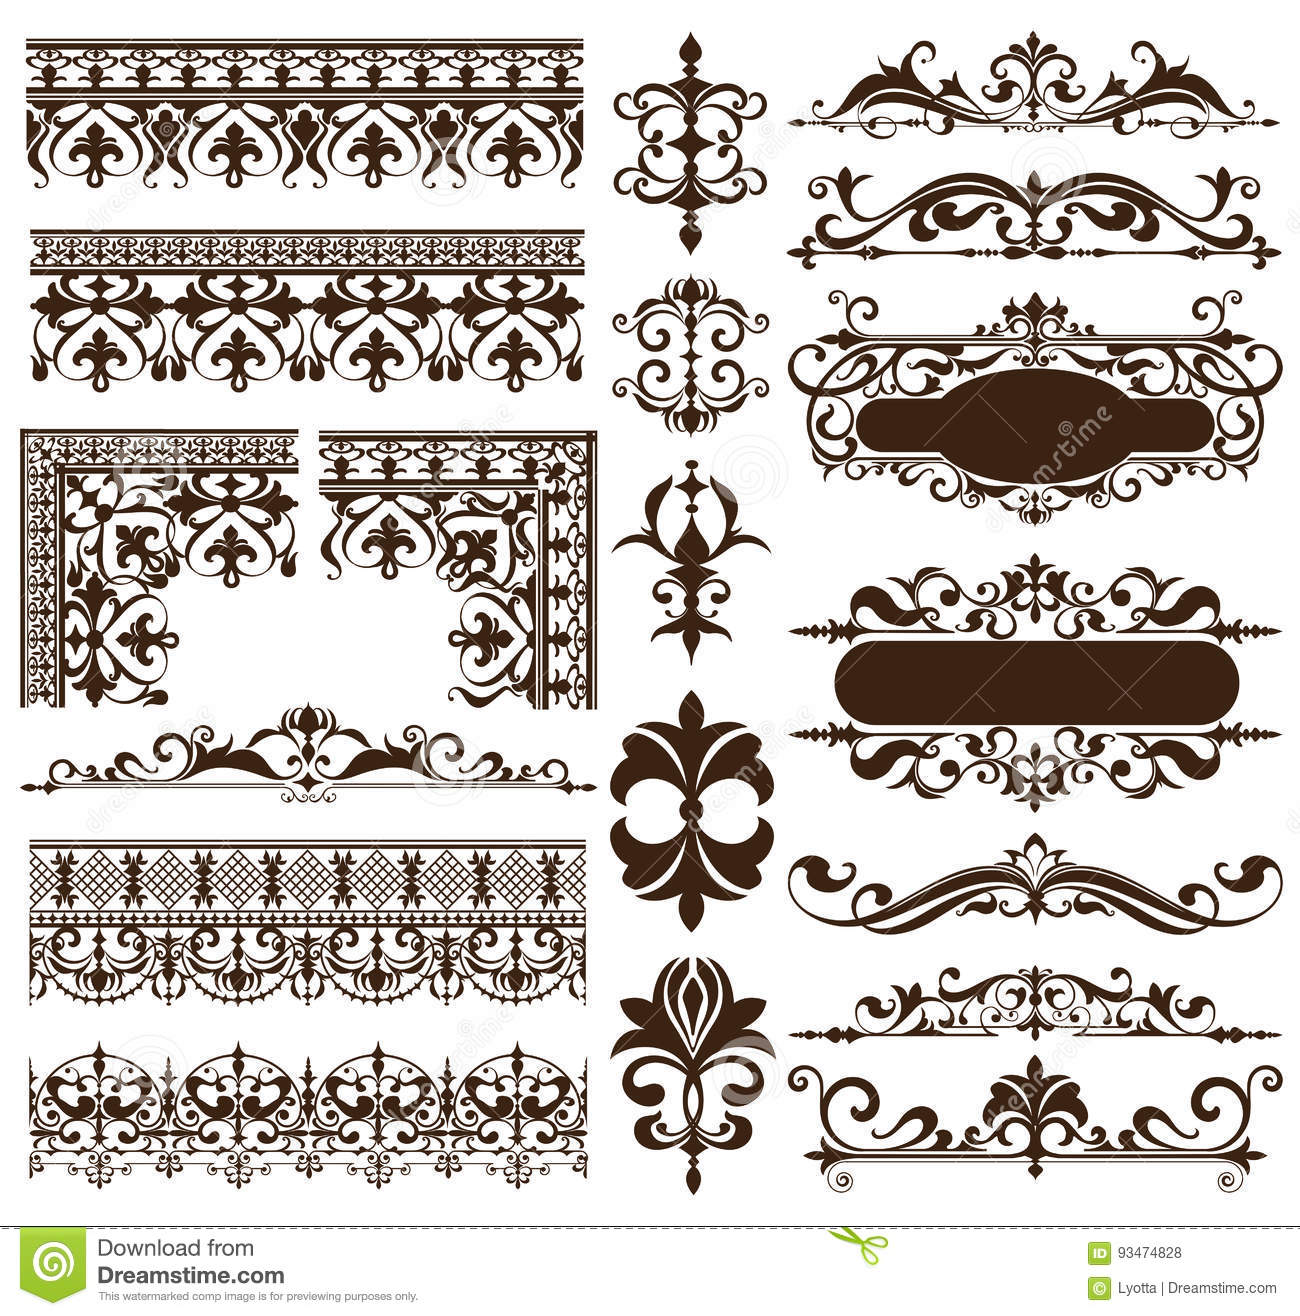 Art deco design elements of vintage ornaments and borders for Deco 5 elements